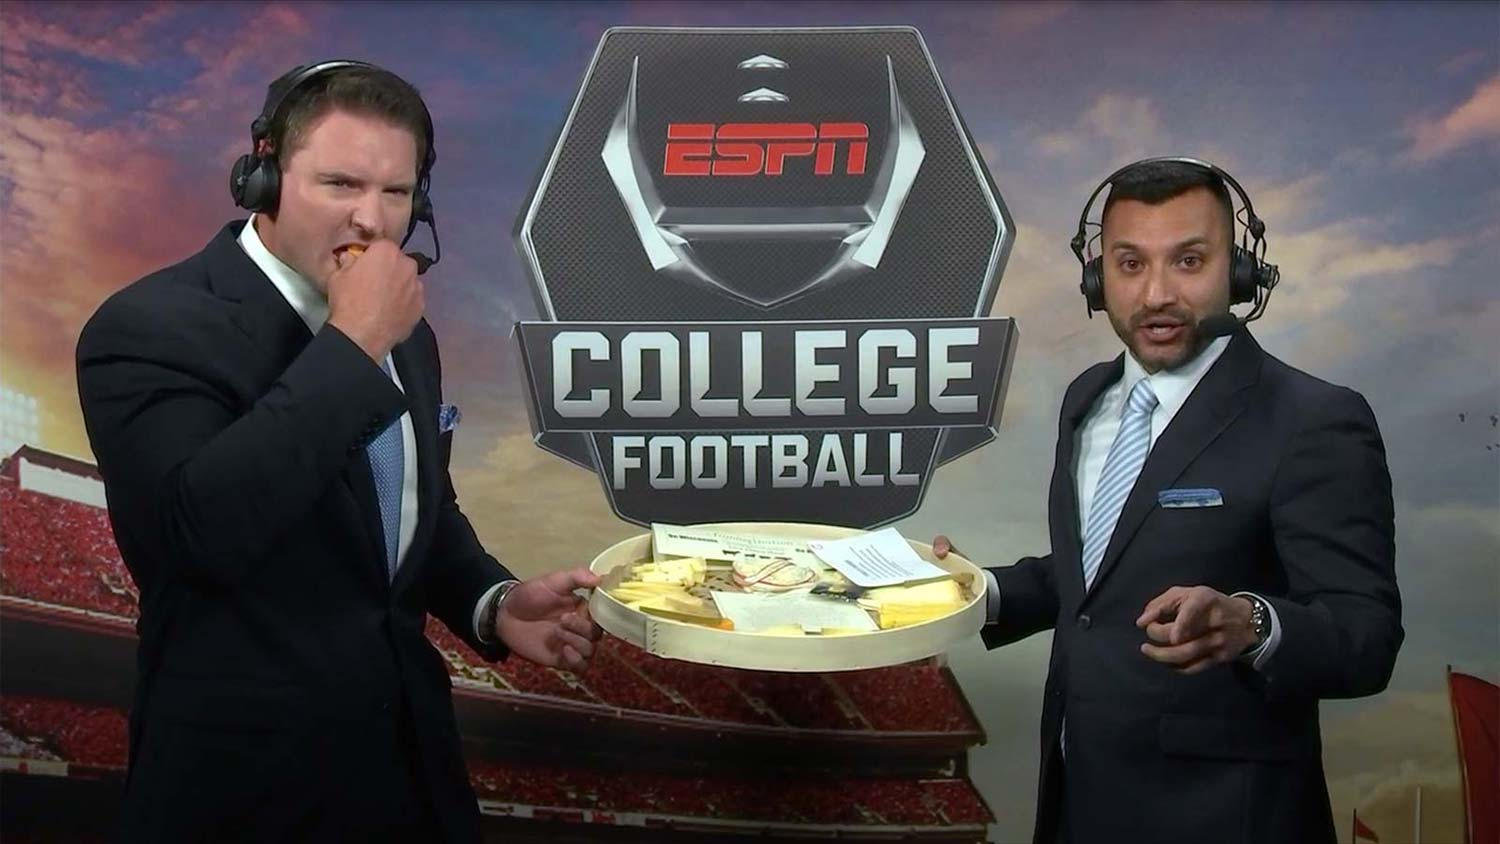 ESPN and cheese